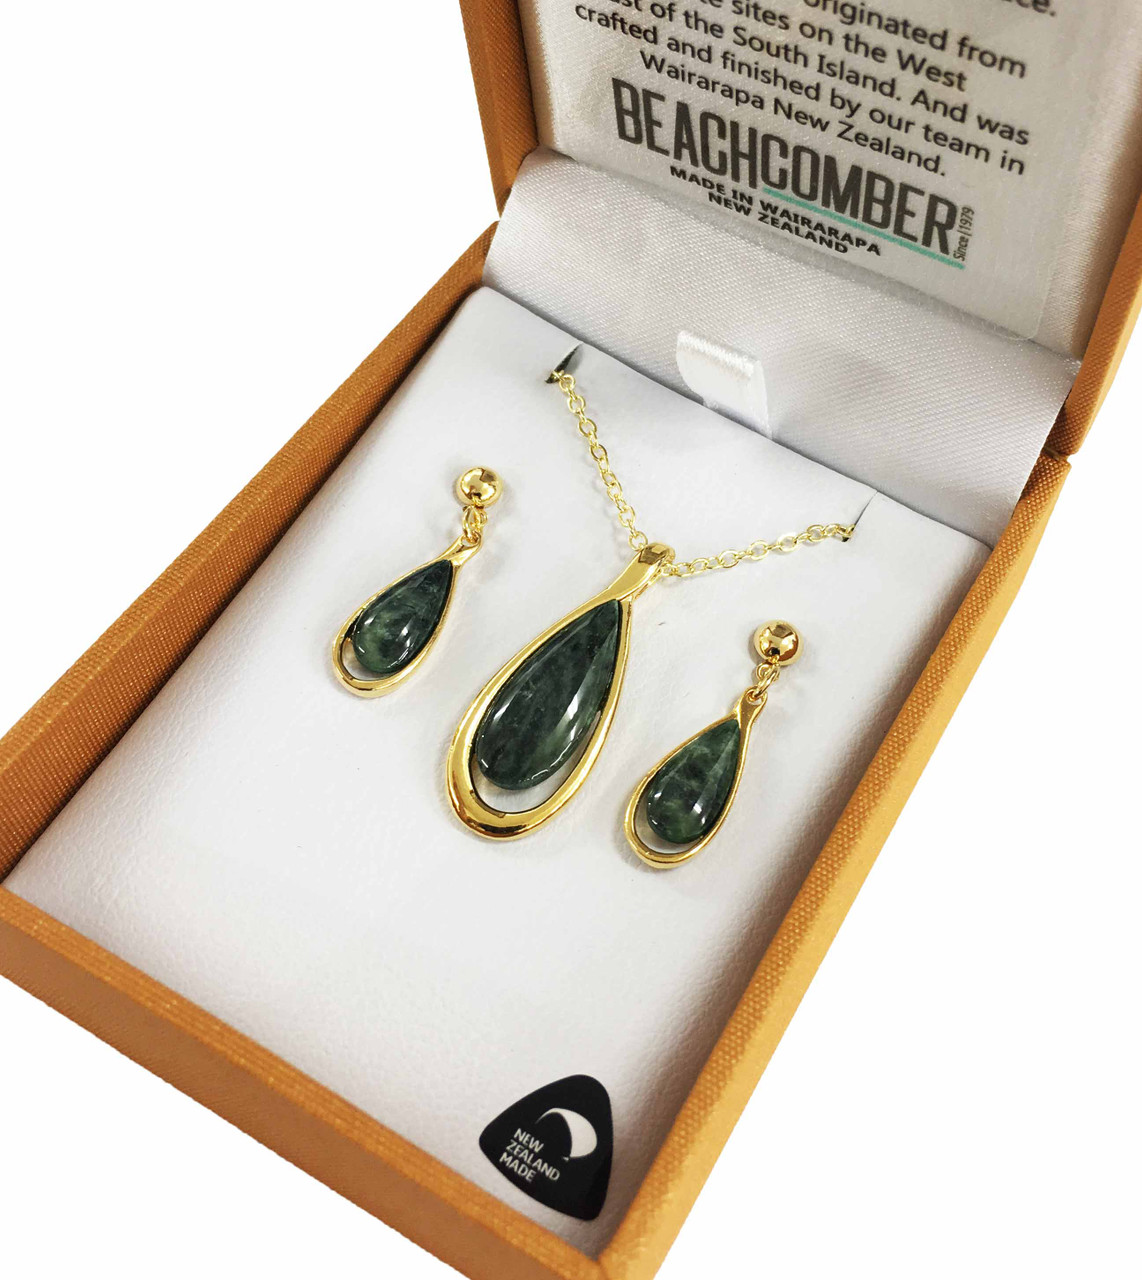 BBJ4137S NZ Pounamu and Earrings Set In 22ct Gold Plated